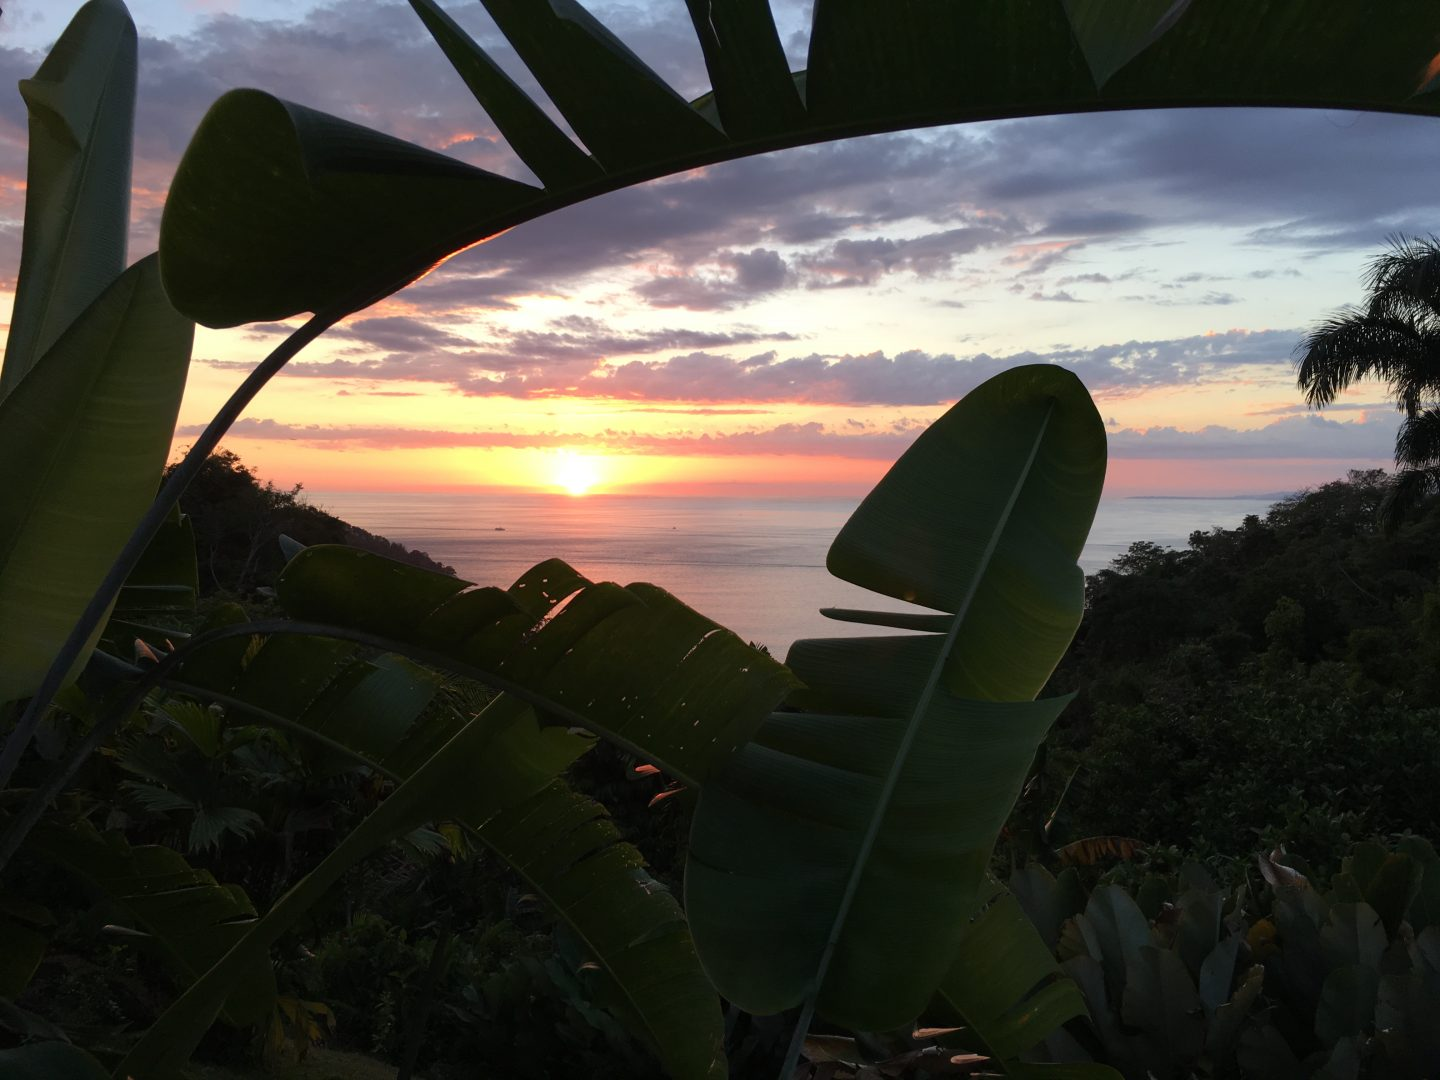 Pura Vida: A Few Days in Costa Rica